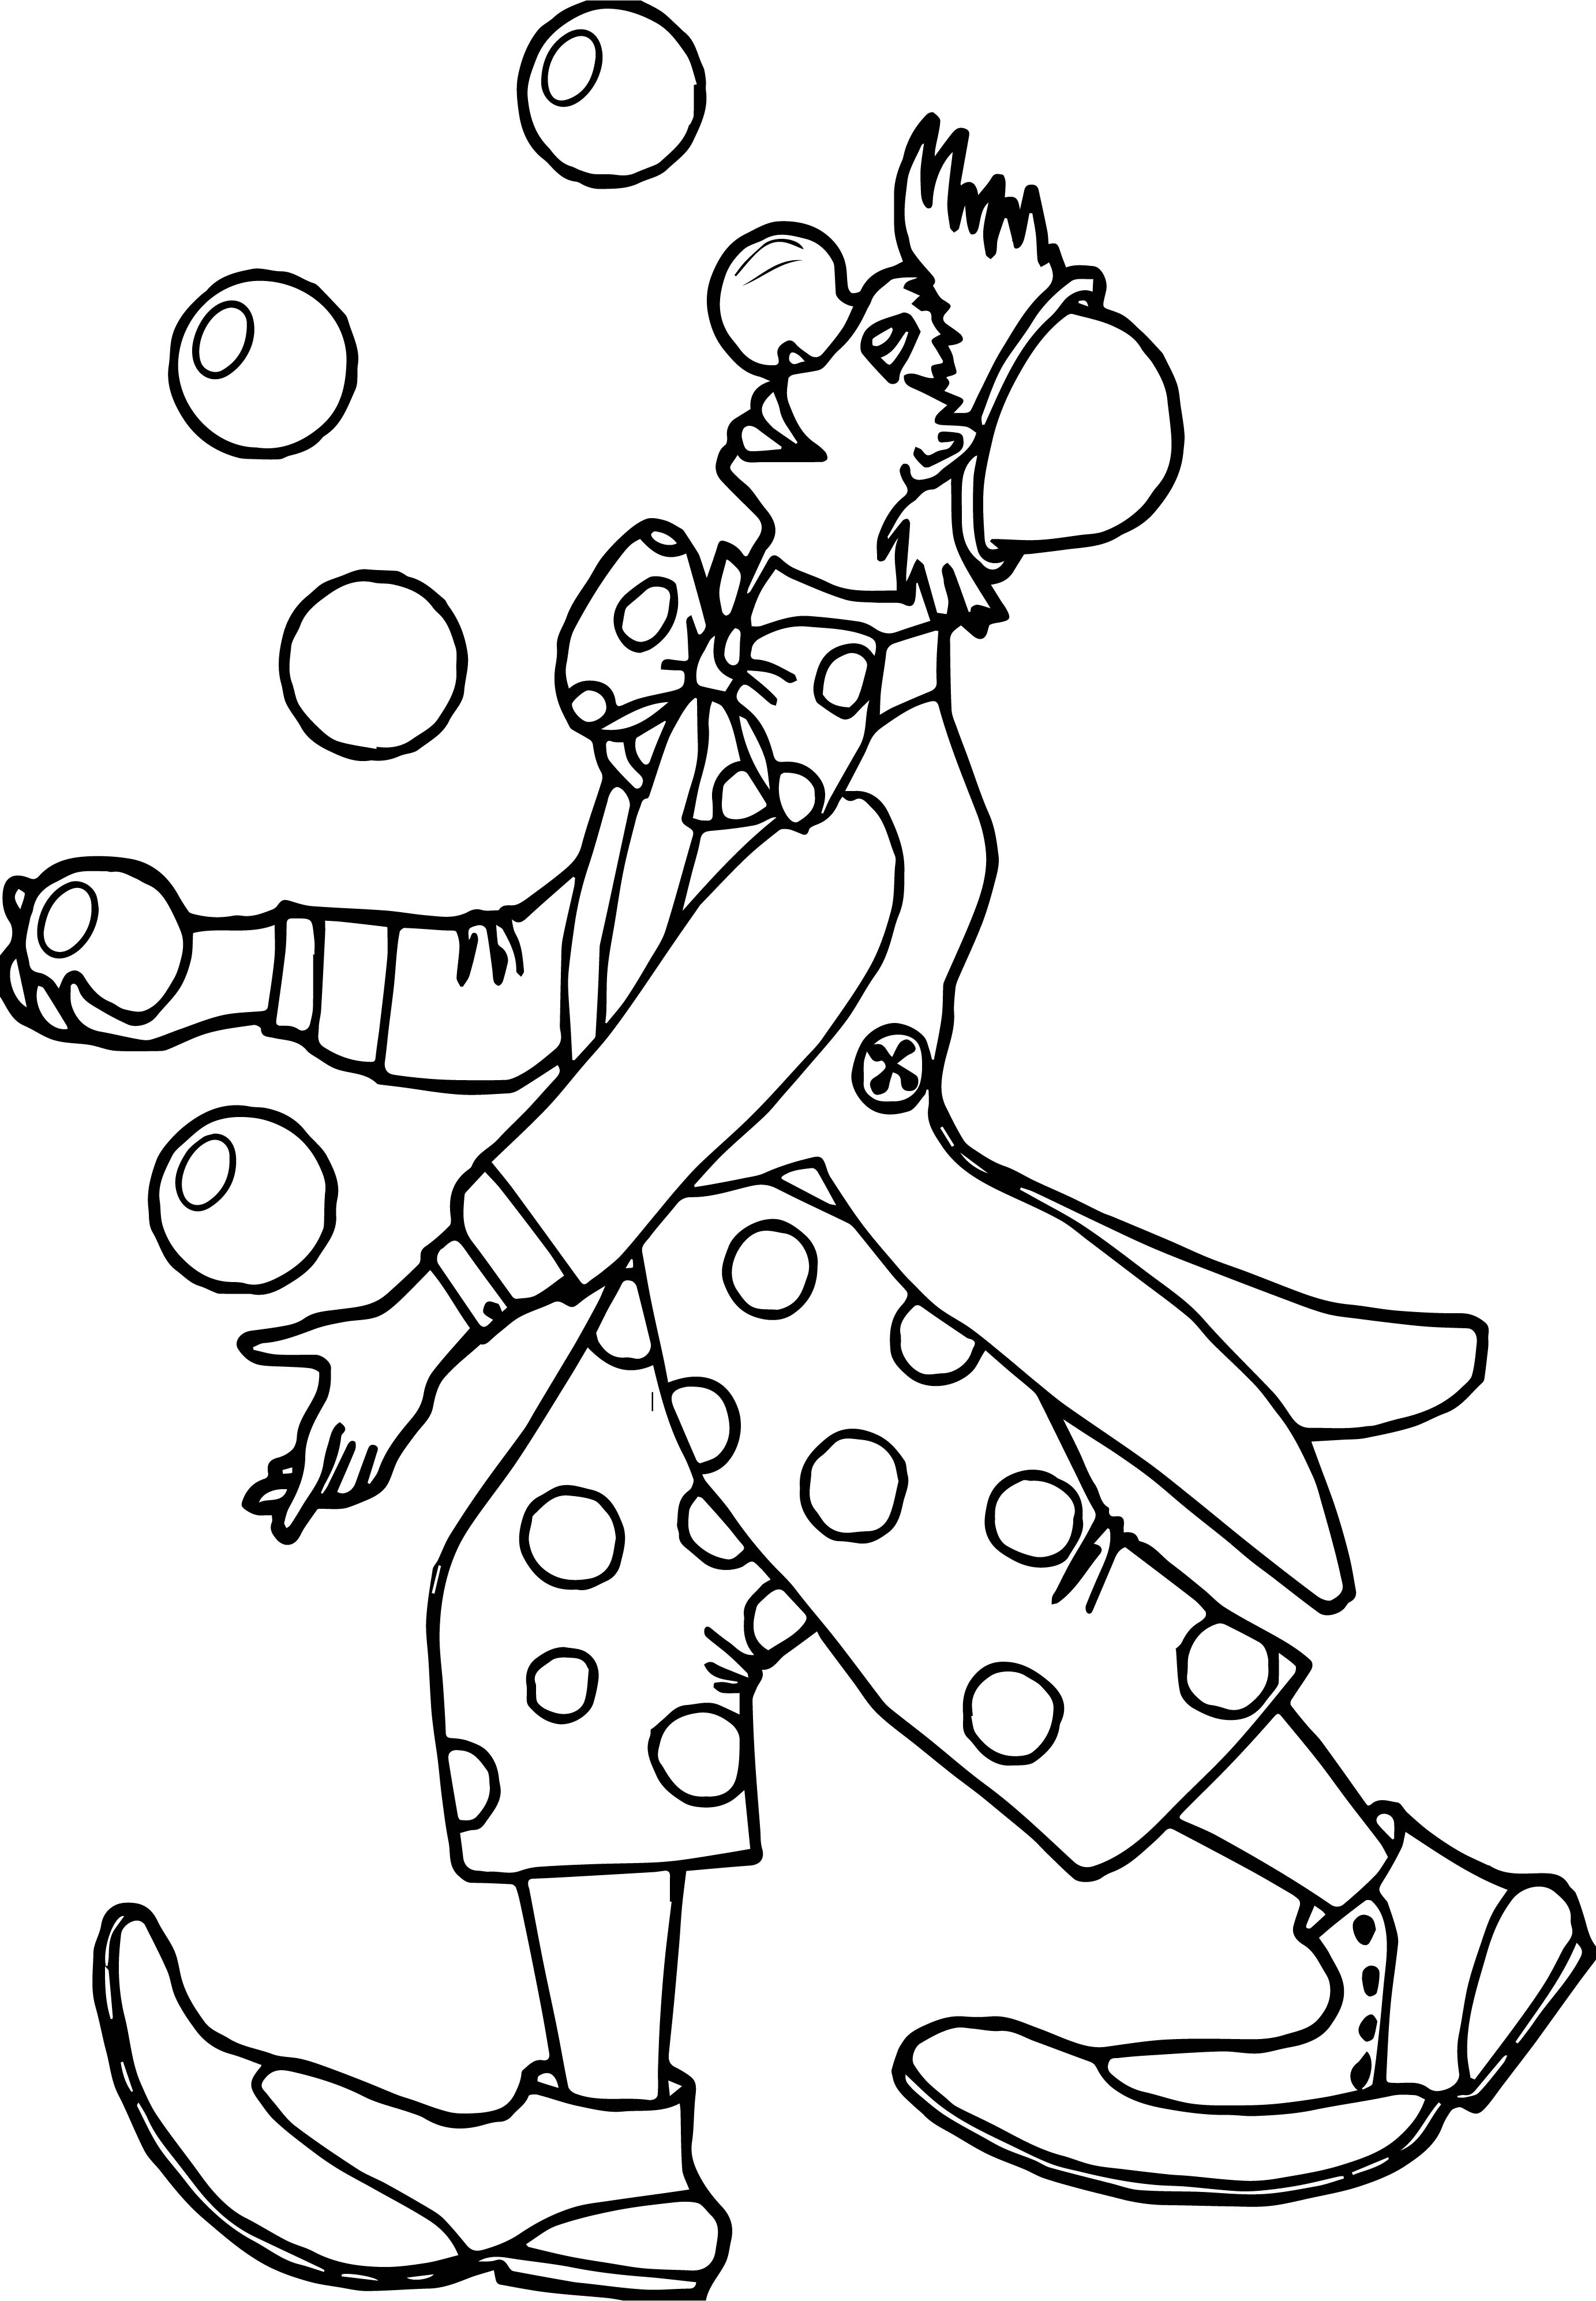 clown coloring page 2 wecoloringpage